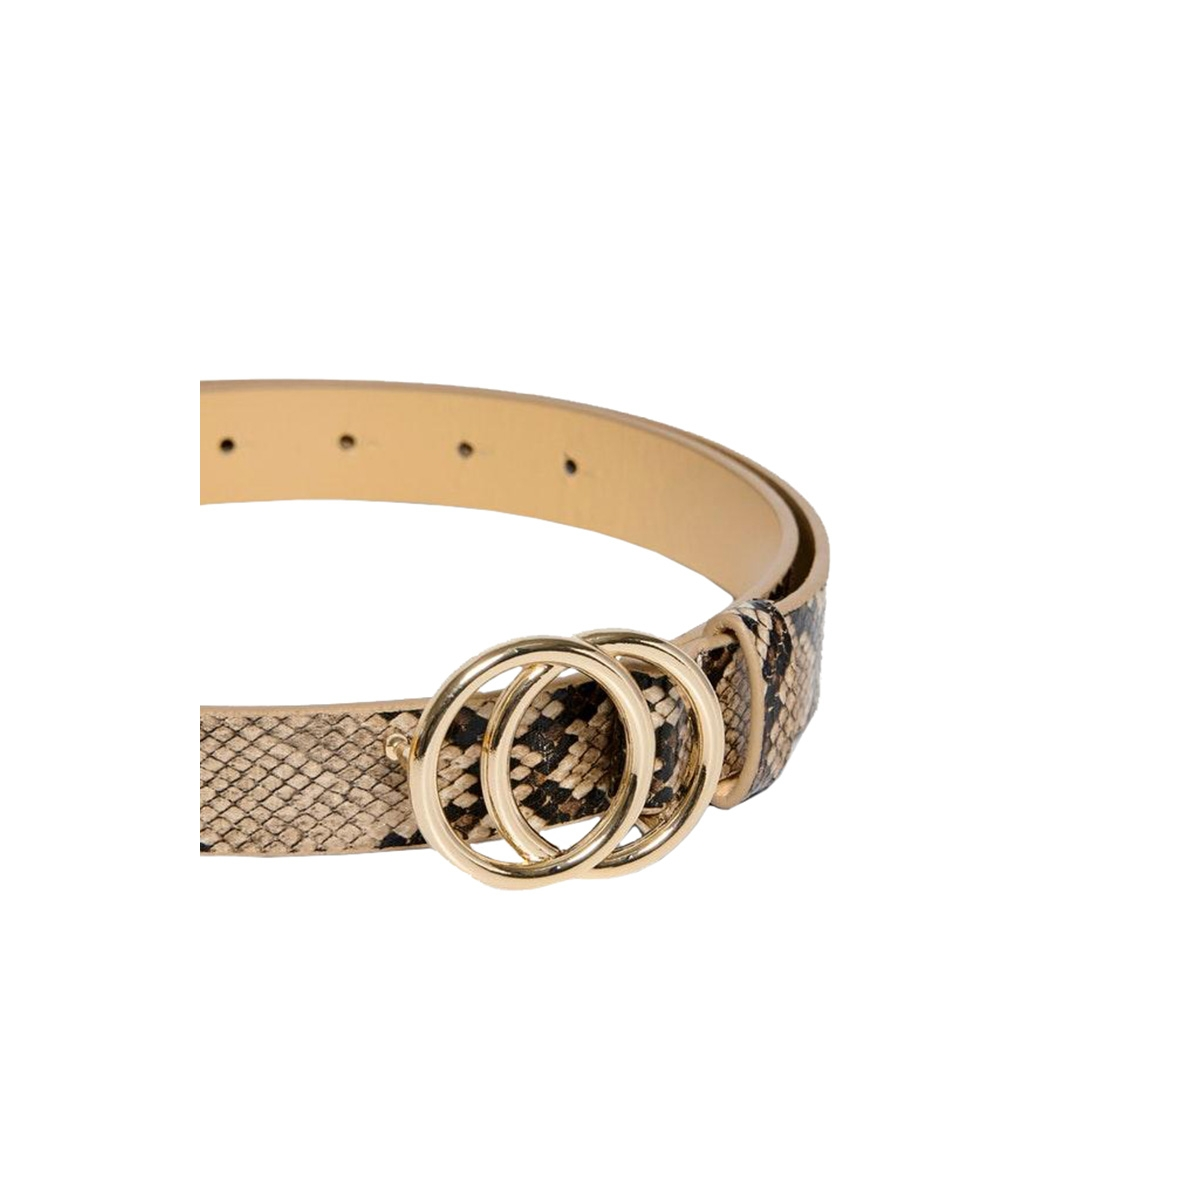 onlrasmine pu snake jeans belt 15215225 only riem natural/naturel snake